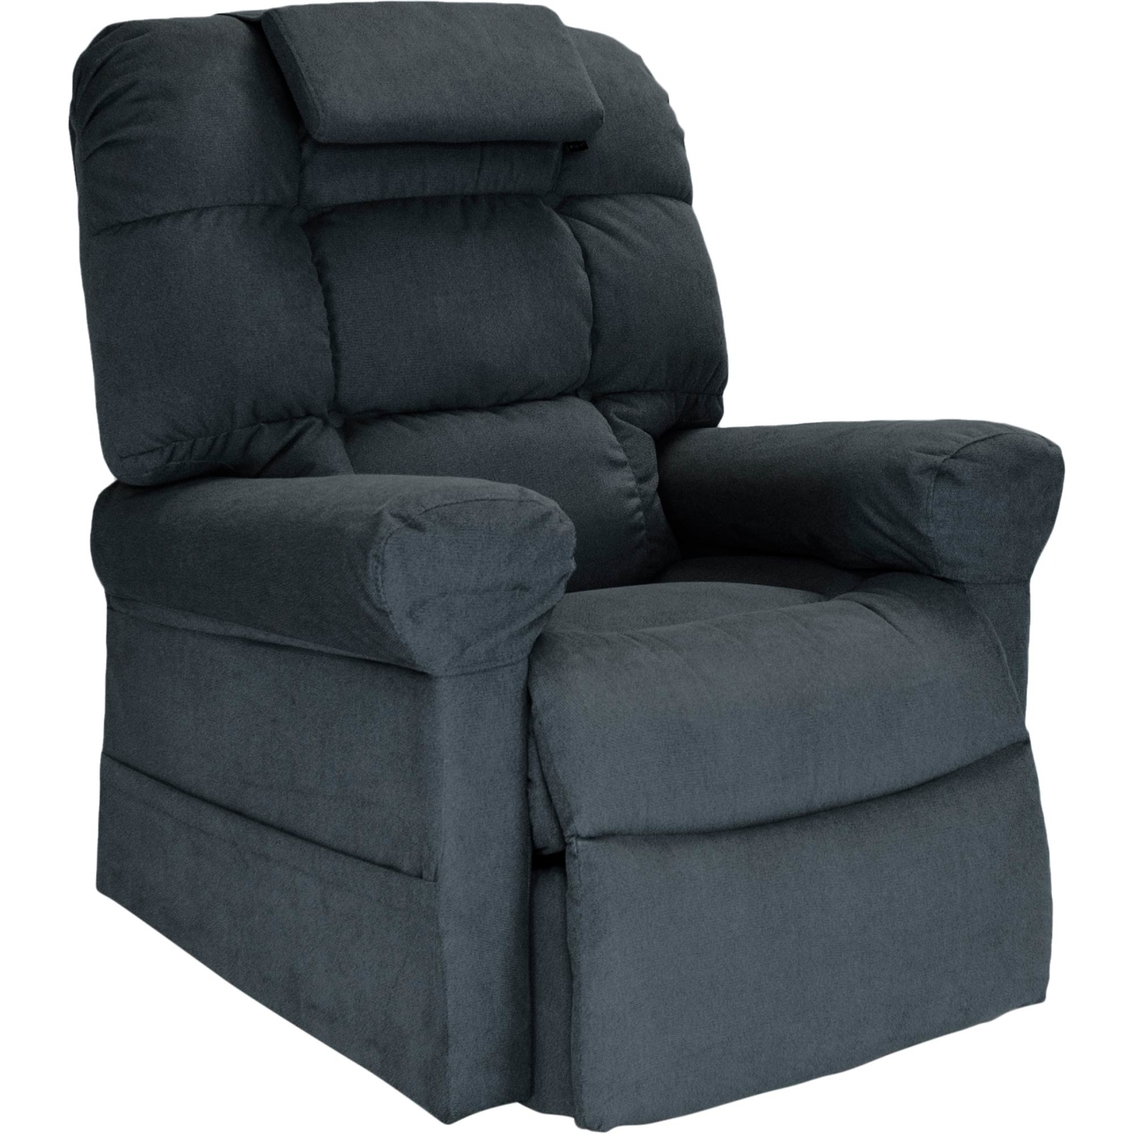 WiseLift 450 Lift Chair